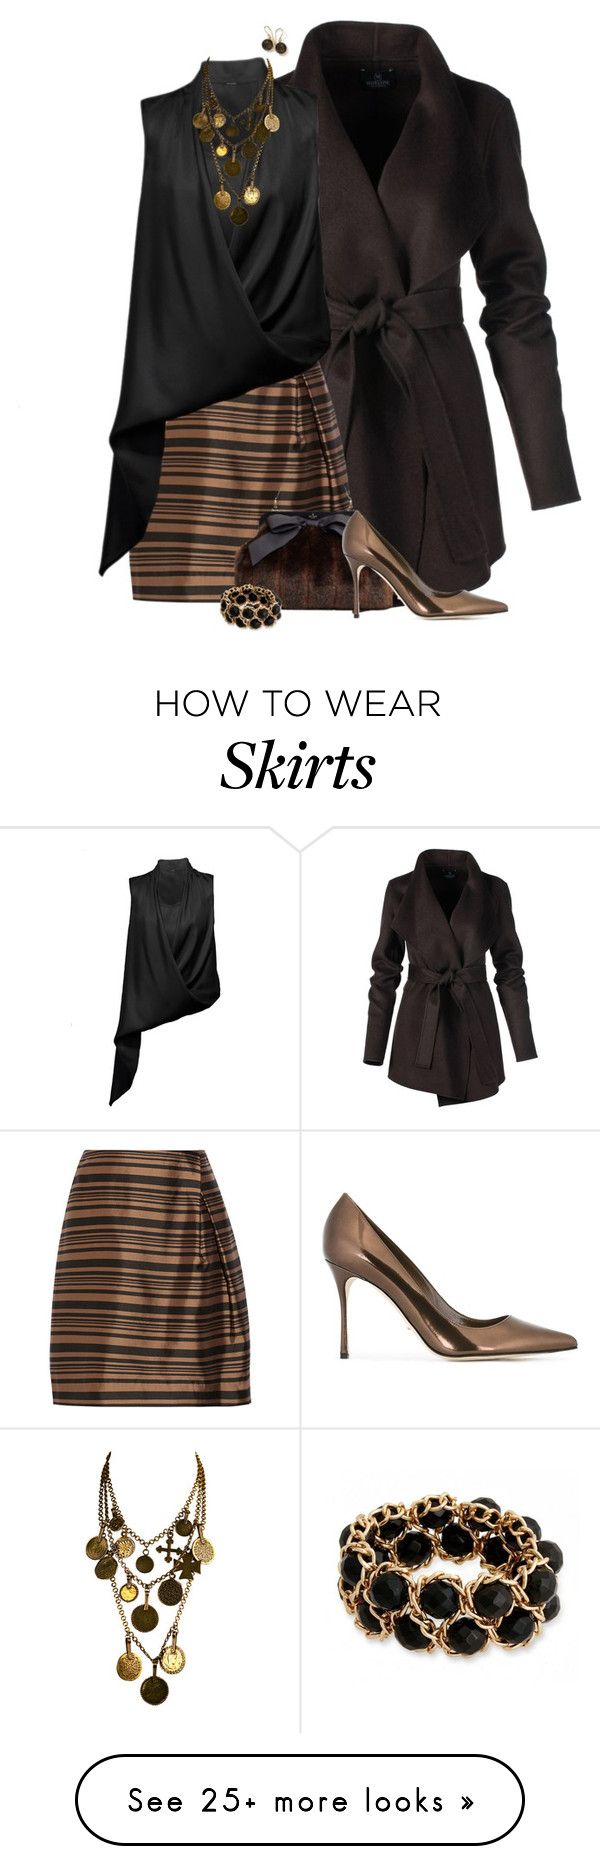 """""""Raoul Tulip"""" by tinayar on Polyvore featuring Raoul, Kate Spade, chikimiki, Sergio Rossi, Erica Lyons, Yves Saint Laurent and Ippolita"""